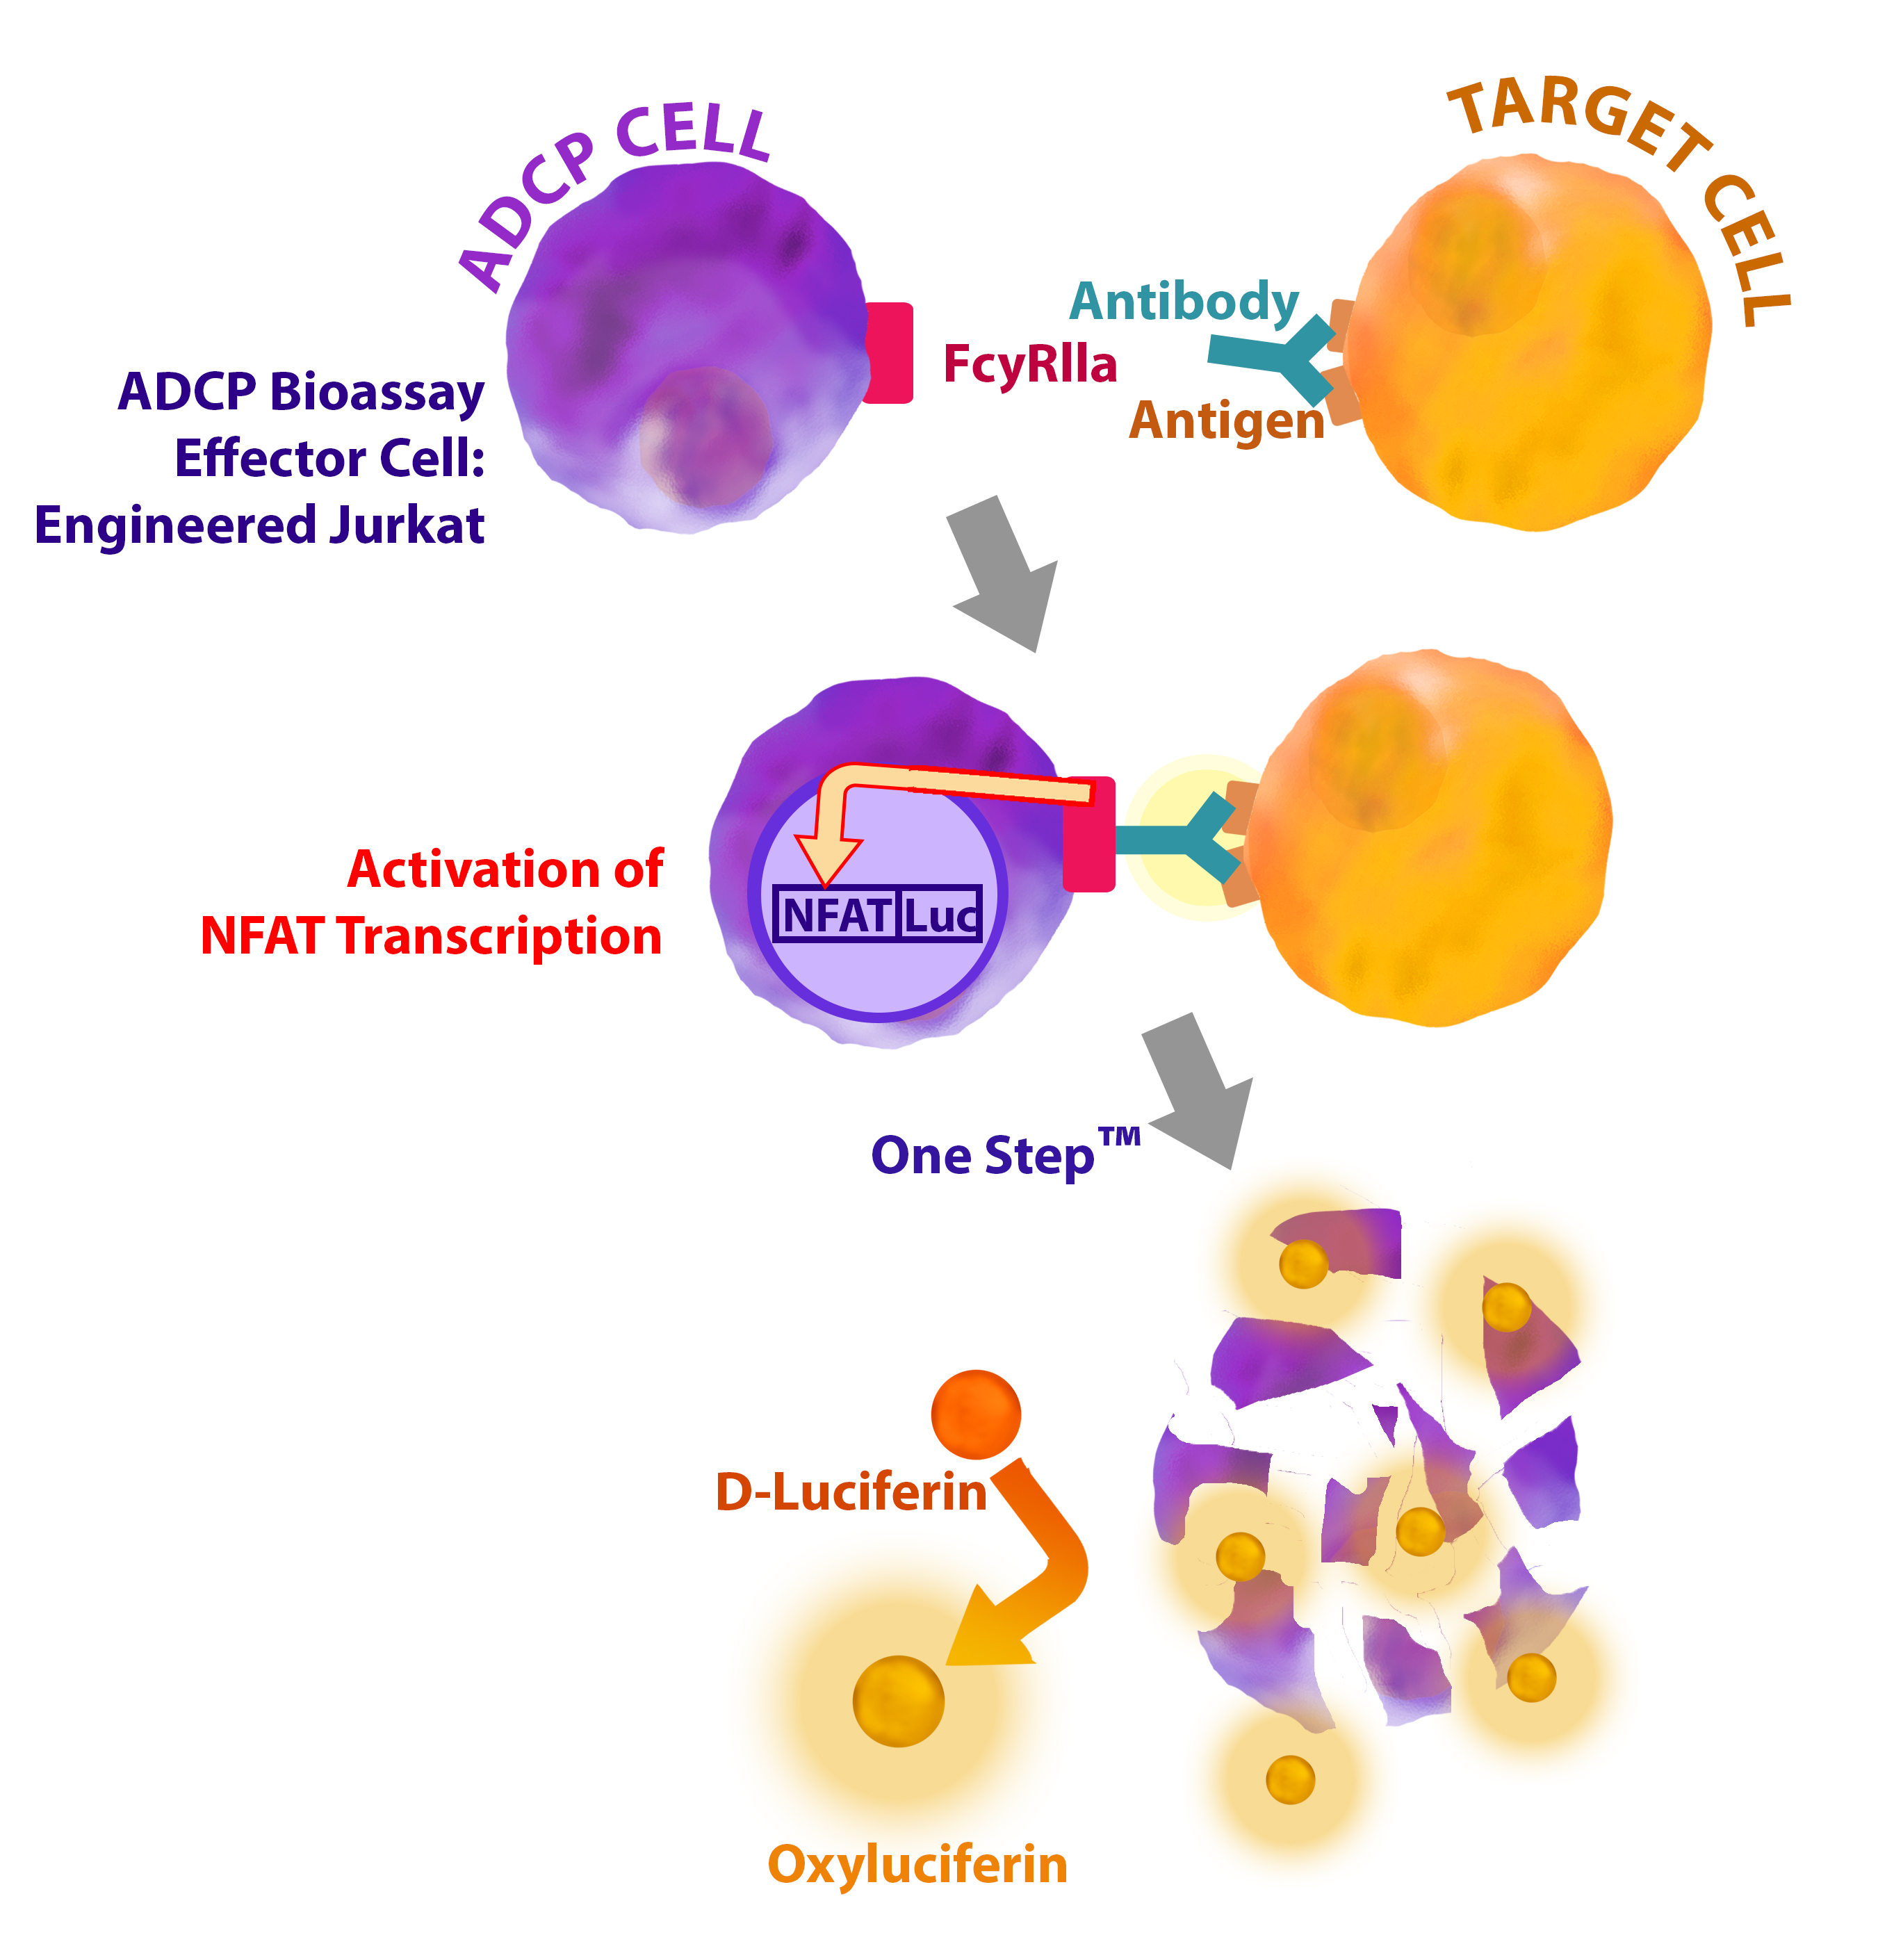 ADCP Bioassay Cell Line